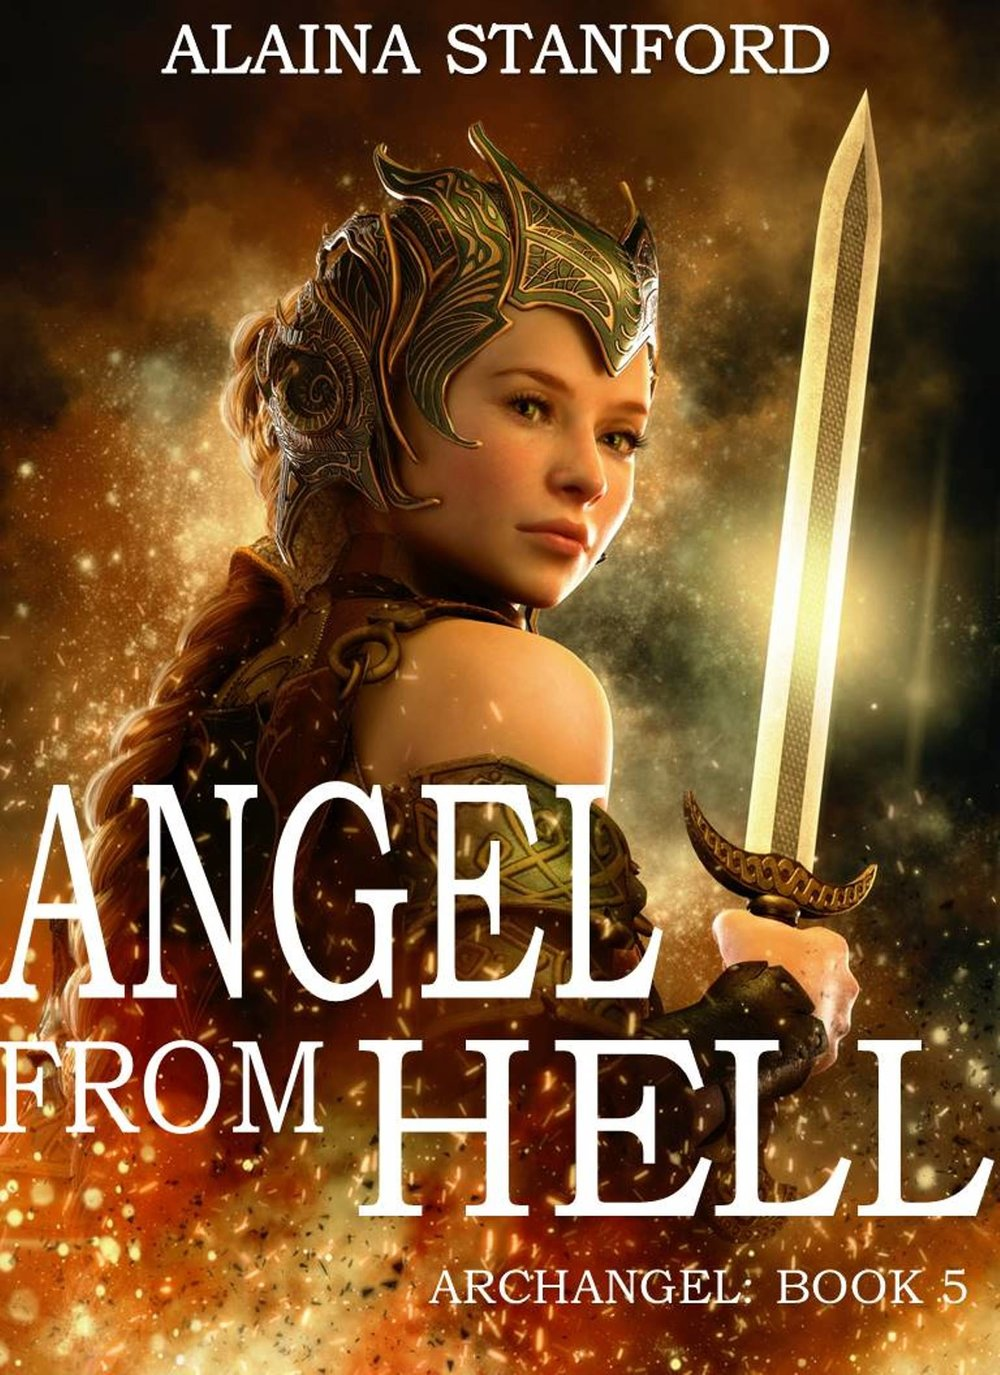 Angel From Hell, Archangel Book 5--- Coming August 2017  Is she too beautiful to be evil?  O'liv'et lost her wings in the Great War after she chose to follow Lucifer. It was the only mistake she ever made and it earned her an eternal place in the lake of fire. Lucifer was no more. Once he and all his followers were cast out of heaven, Lucifer' could no longer hide the evil inside. Slowly over a millennia O'livet watched in horror as Lucifer transformed into Satan, the King of Hell. Only then did she realize Lucifer had not only betrayed God, but all of his followers as well. He was not Gods equal, he could never be. There was no new Garden of Eden waiting for them beyond God's reach as he had promised. One day in deep despair O'livet crawled out of the pit of hell and stood at the edge of the chasm that separated them from heaven. She fell to her knees and dared to pray to be shown the path to redemption. A vision flashed across the sky before her of a young man with coal black hair and dark brown eyes. The wind whispered his name and her breath caught in her throat. Suddenly everything became clear.